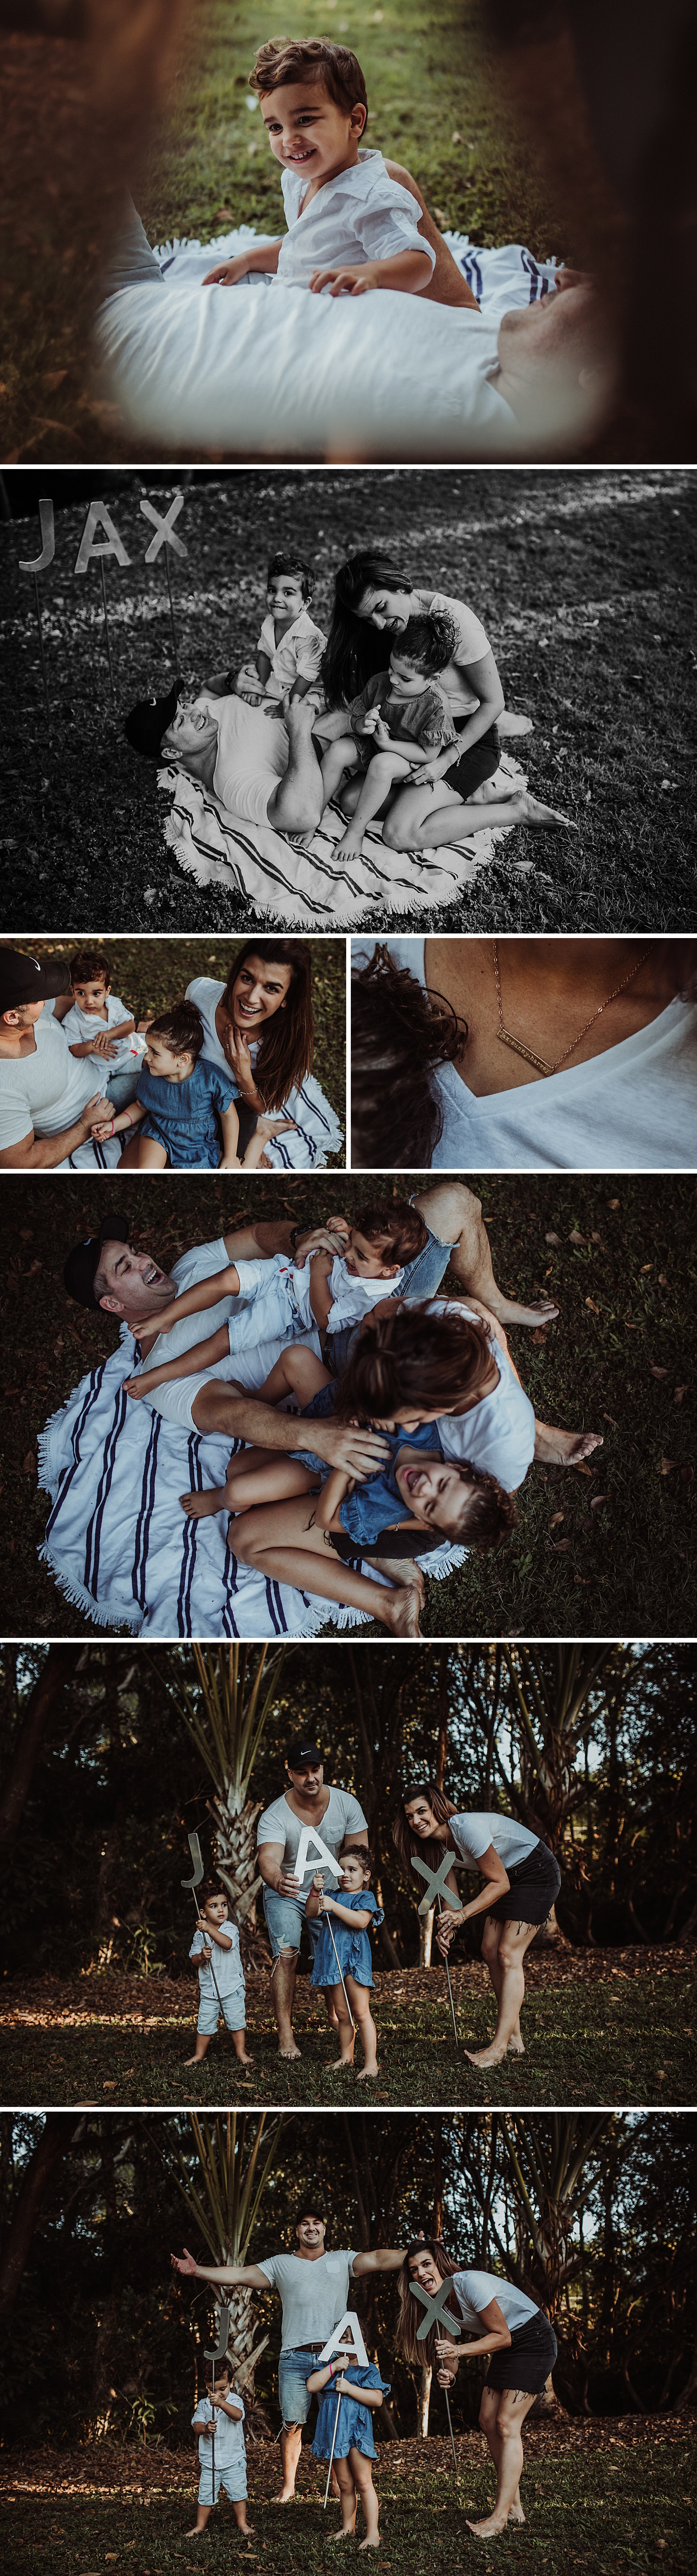 Remembering infant loss family photographer Townsville North Queensland.jpg